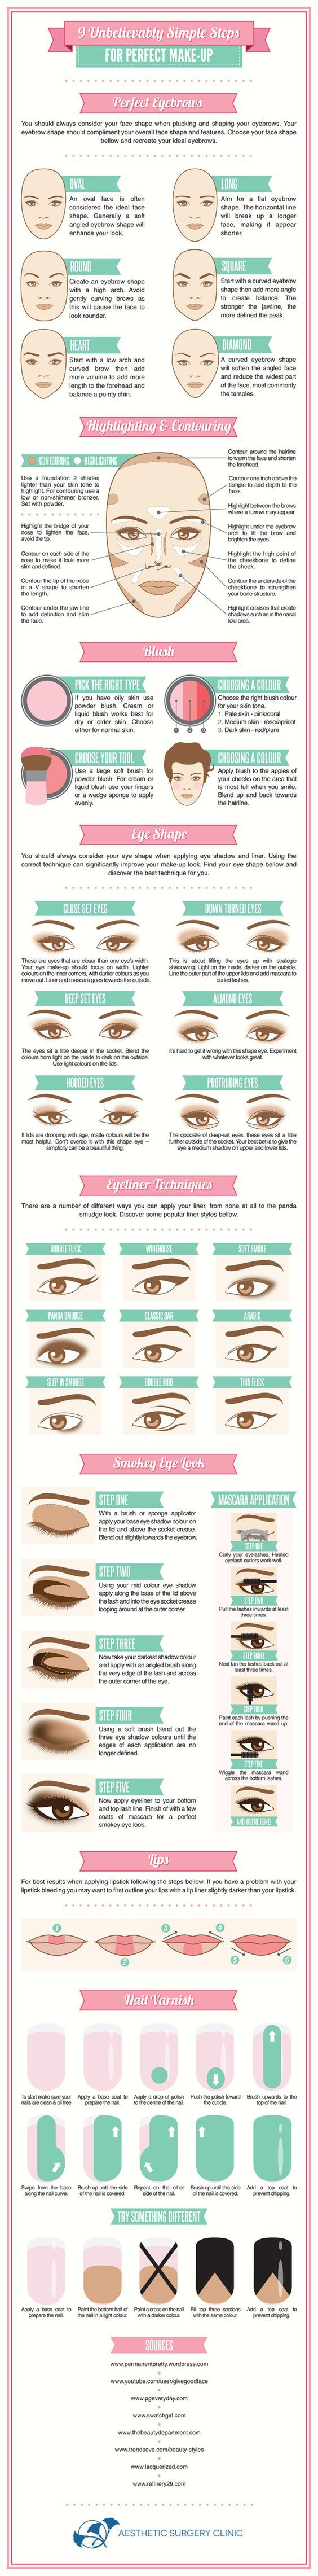 Infographic helps you master the perfect make-up - Beauty - Stylist Magazine